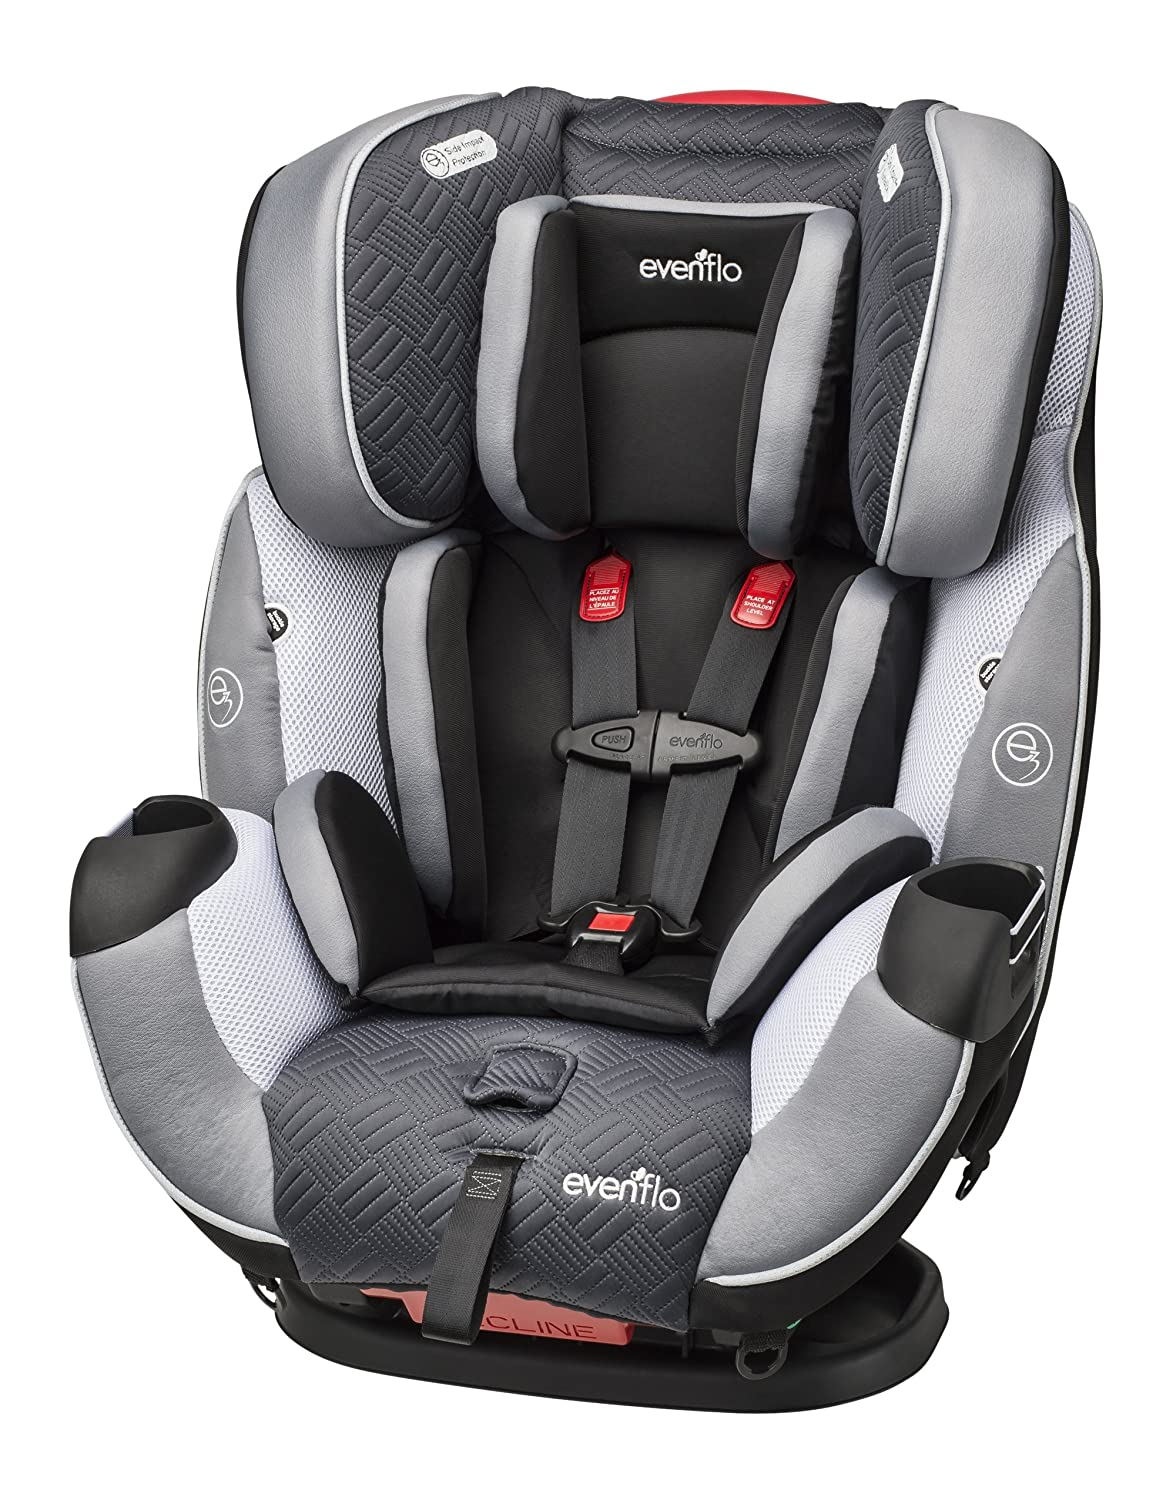 Evenflo Symphony DLX All-in-One Car Seat, Concord 34611648